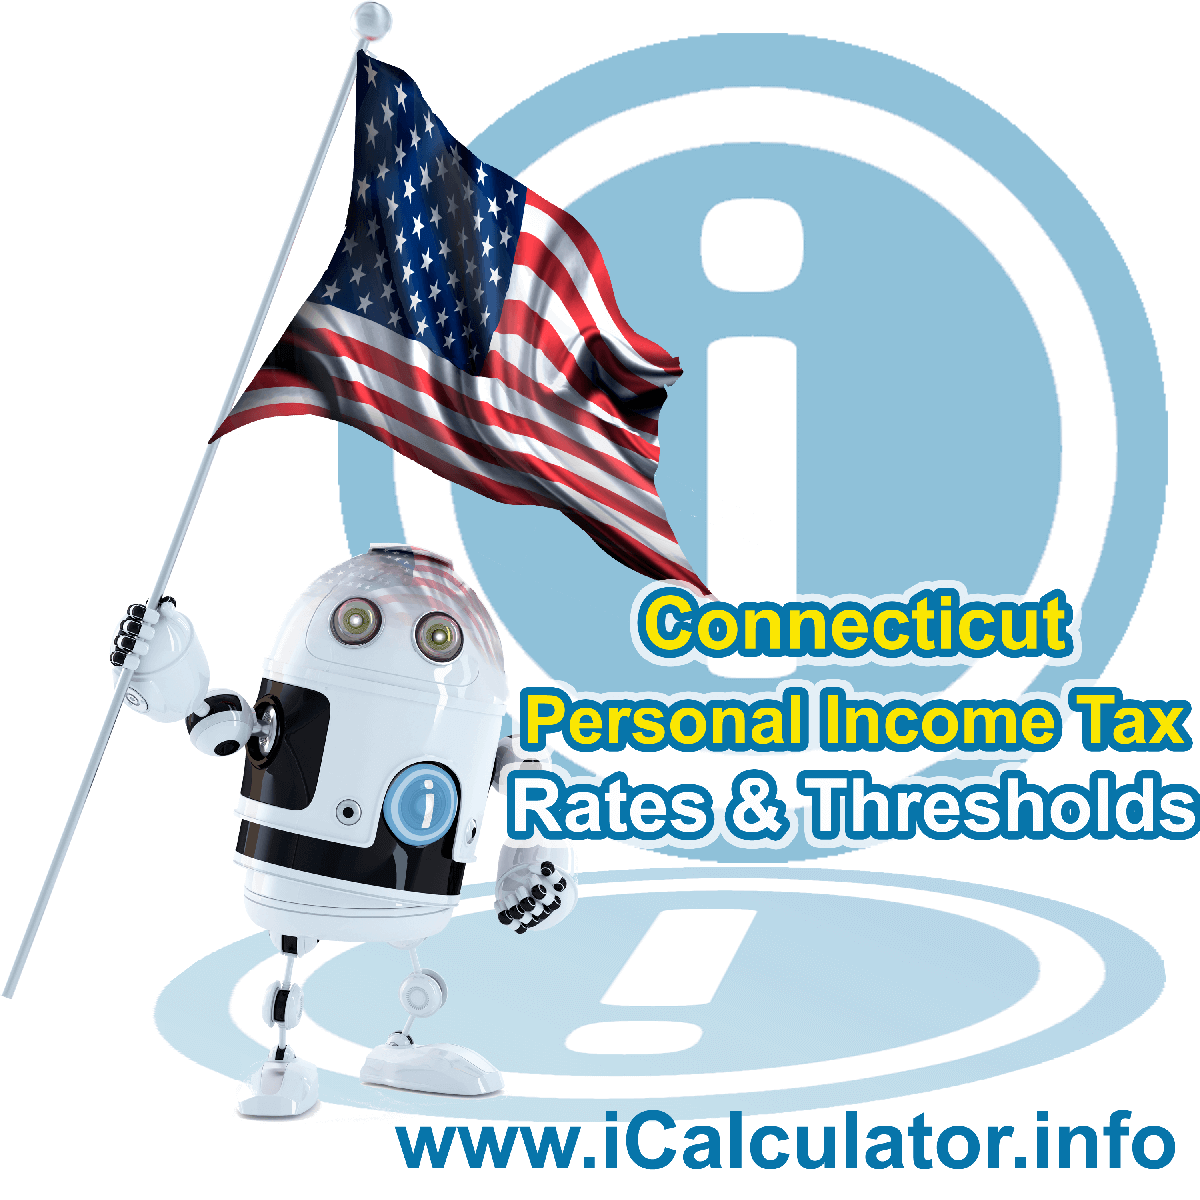 Connecticut State Tax Tables 2019. This image displays details of the Connecticut State Tax Tables for the 2019 tax return year which is provided in support of the 2019 US Tax Calculator